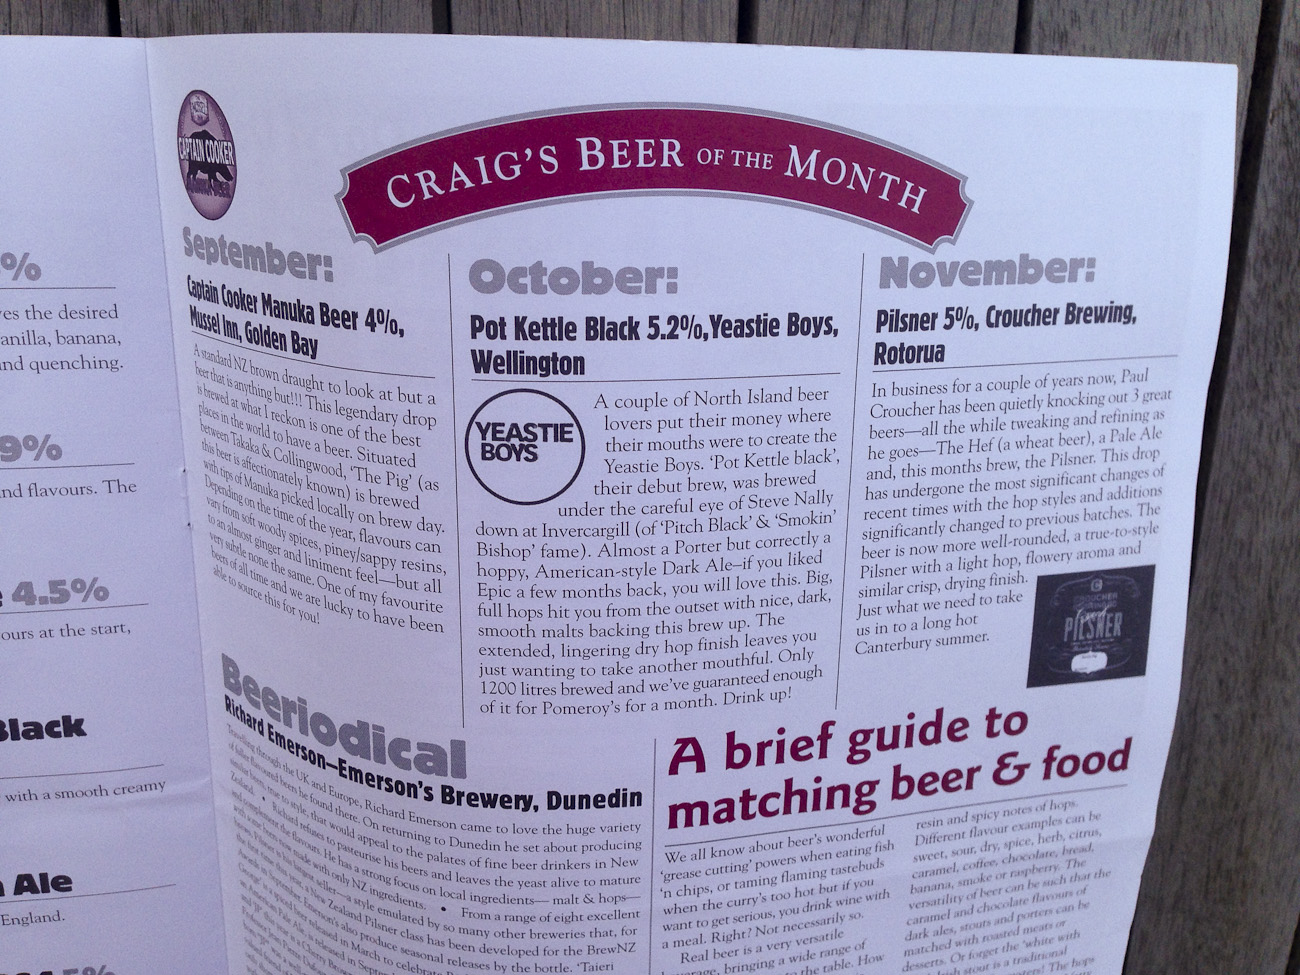 """Pomeroy's Press newsletter, """"Craig's Beer of the Month"""" feature."""